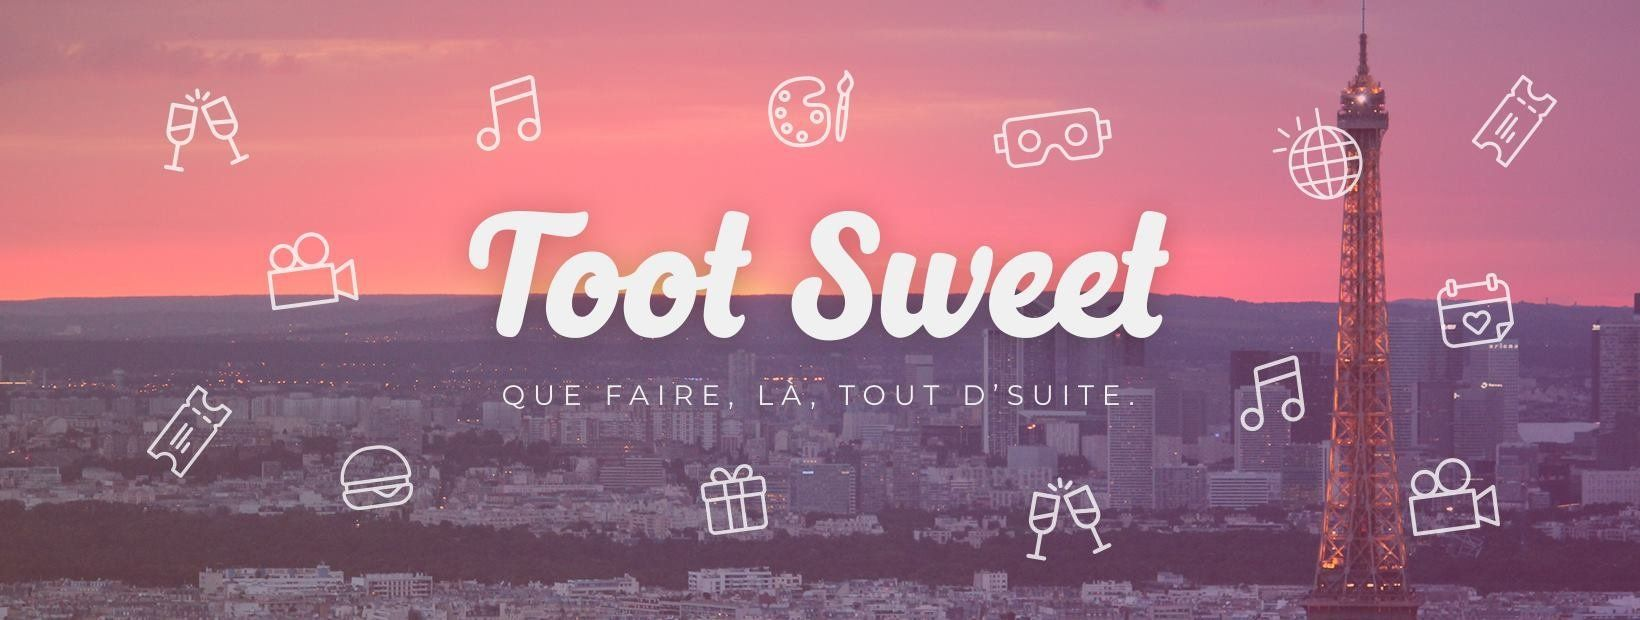 Toot Sweet: L'application développée par deux tunisiens qui cartonne à